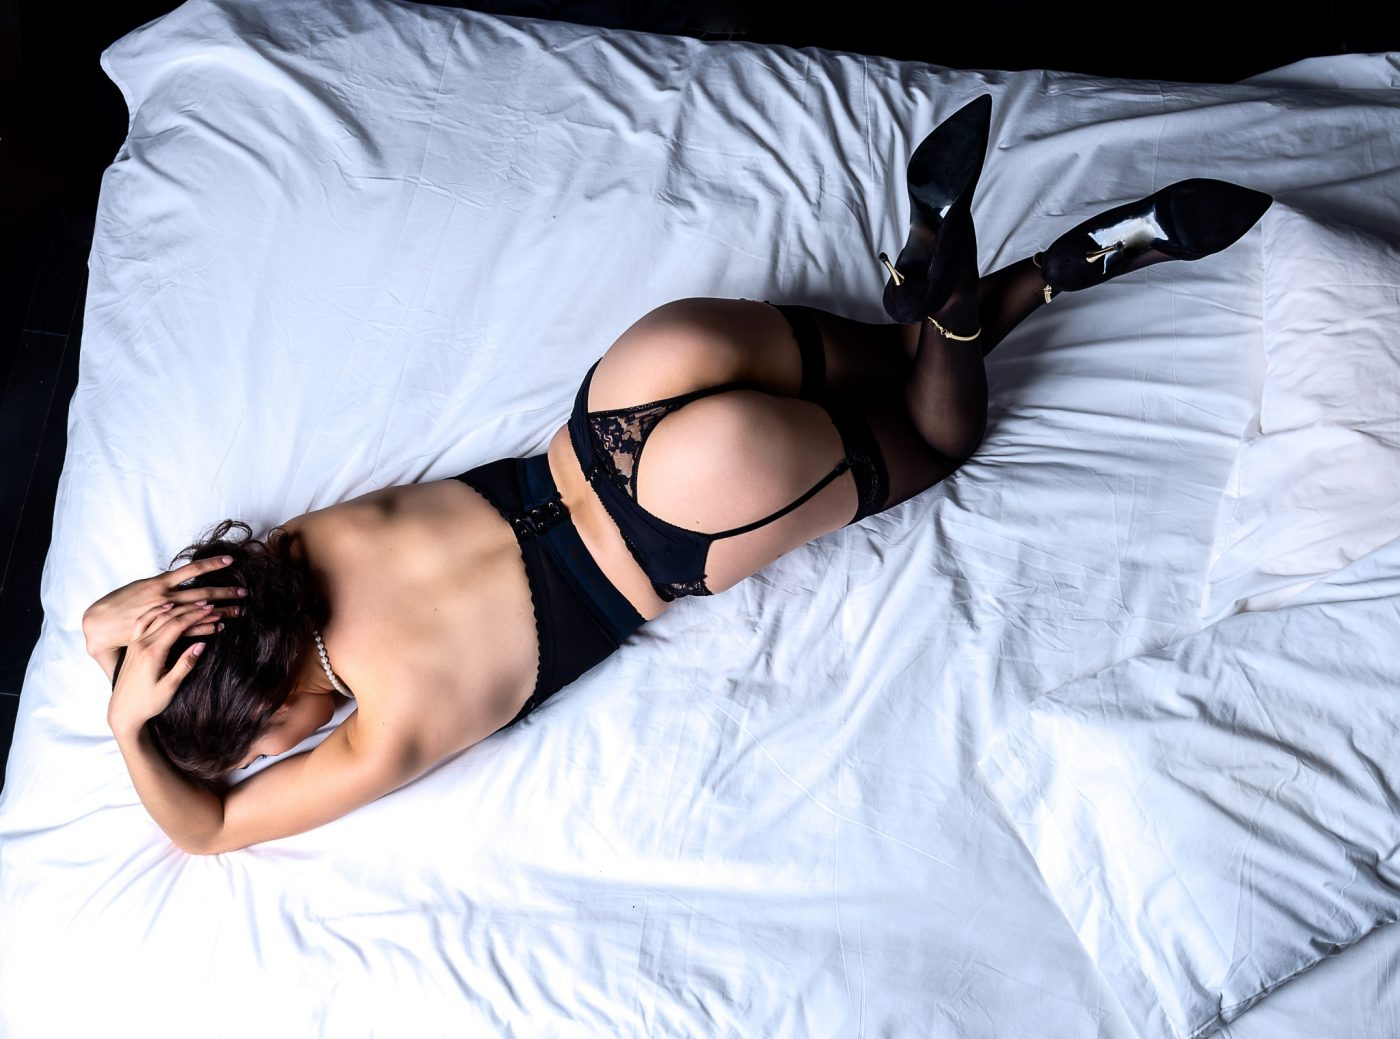 Houston Heights Boudoir Photography Sexy Images